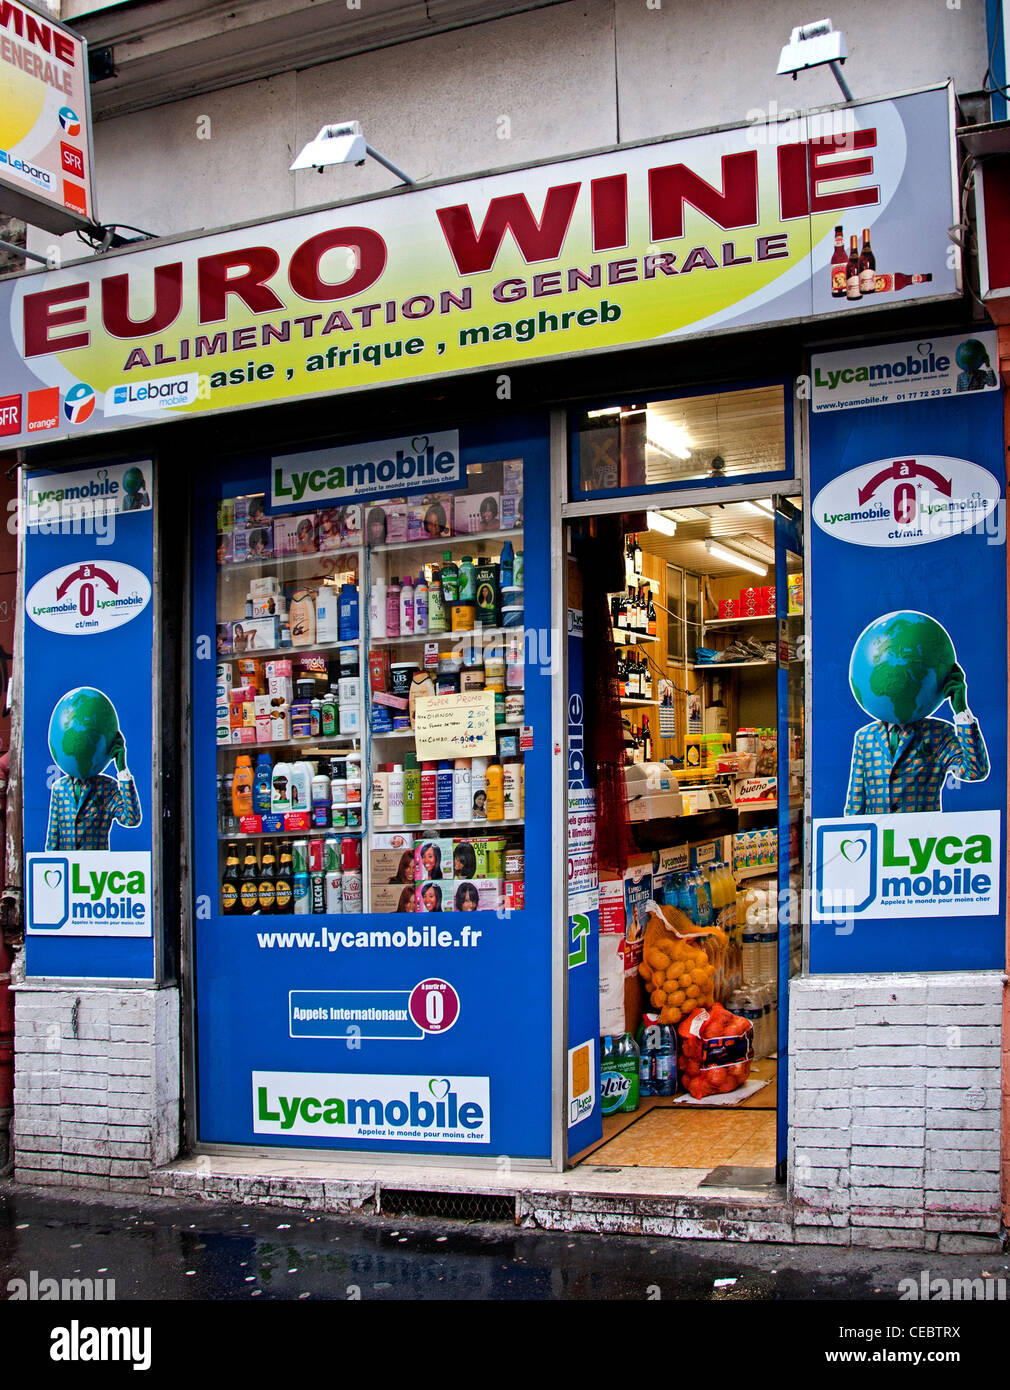 Euro wine Alimentation Generale Grocer Grocery Paris France French - Stock Image